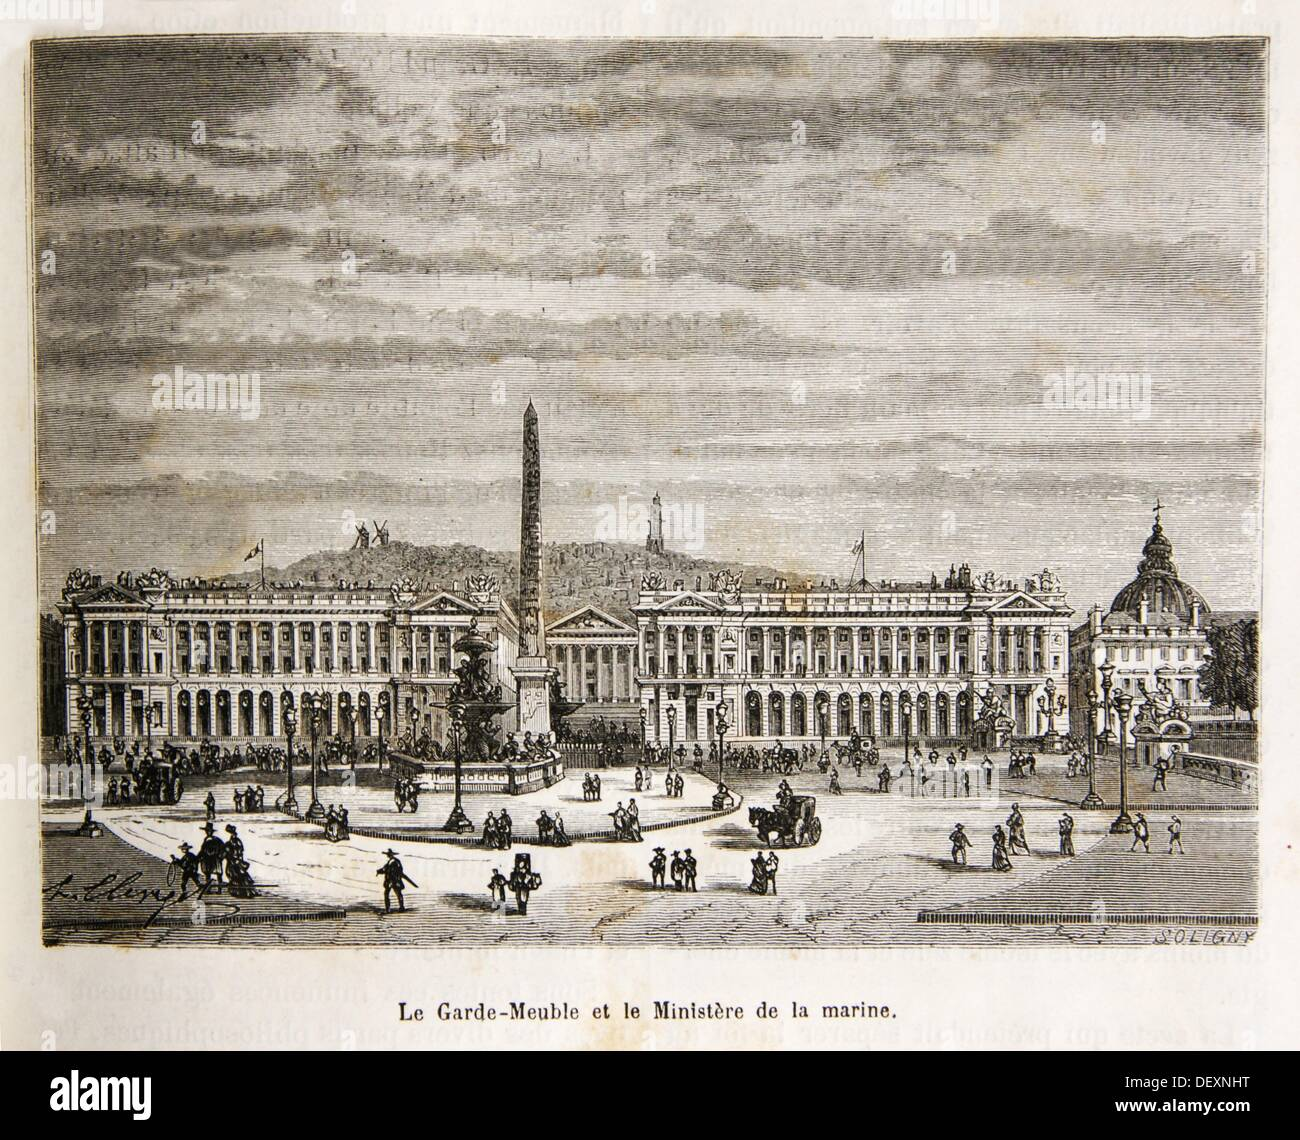 France Garde Meubles Hôtel Du Garde Meuble And The Naval Ministry 18th Century Paris